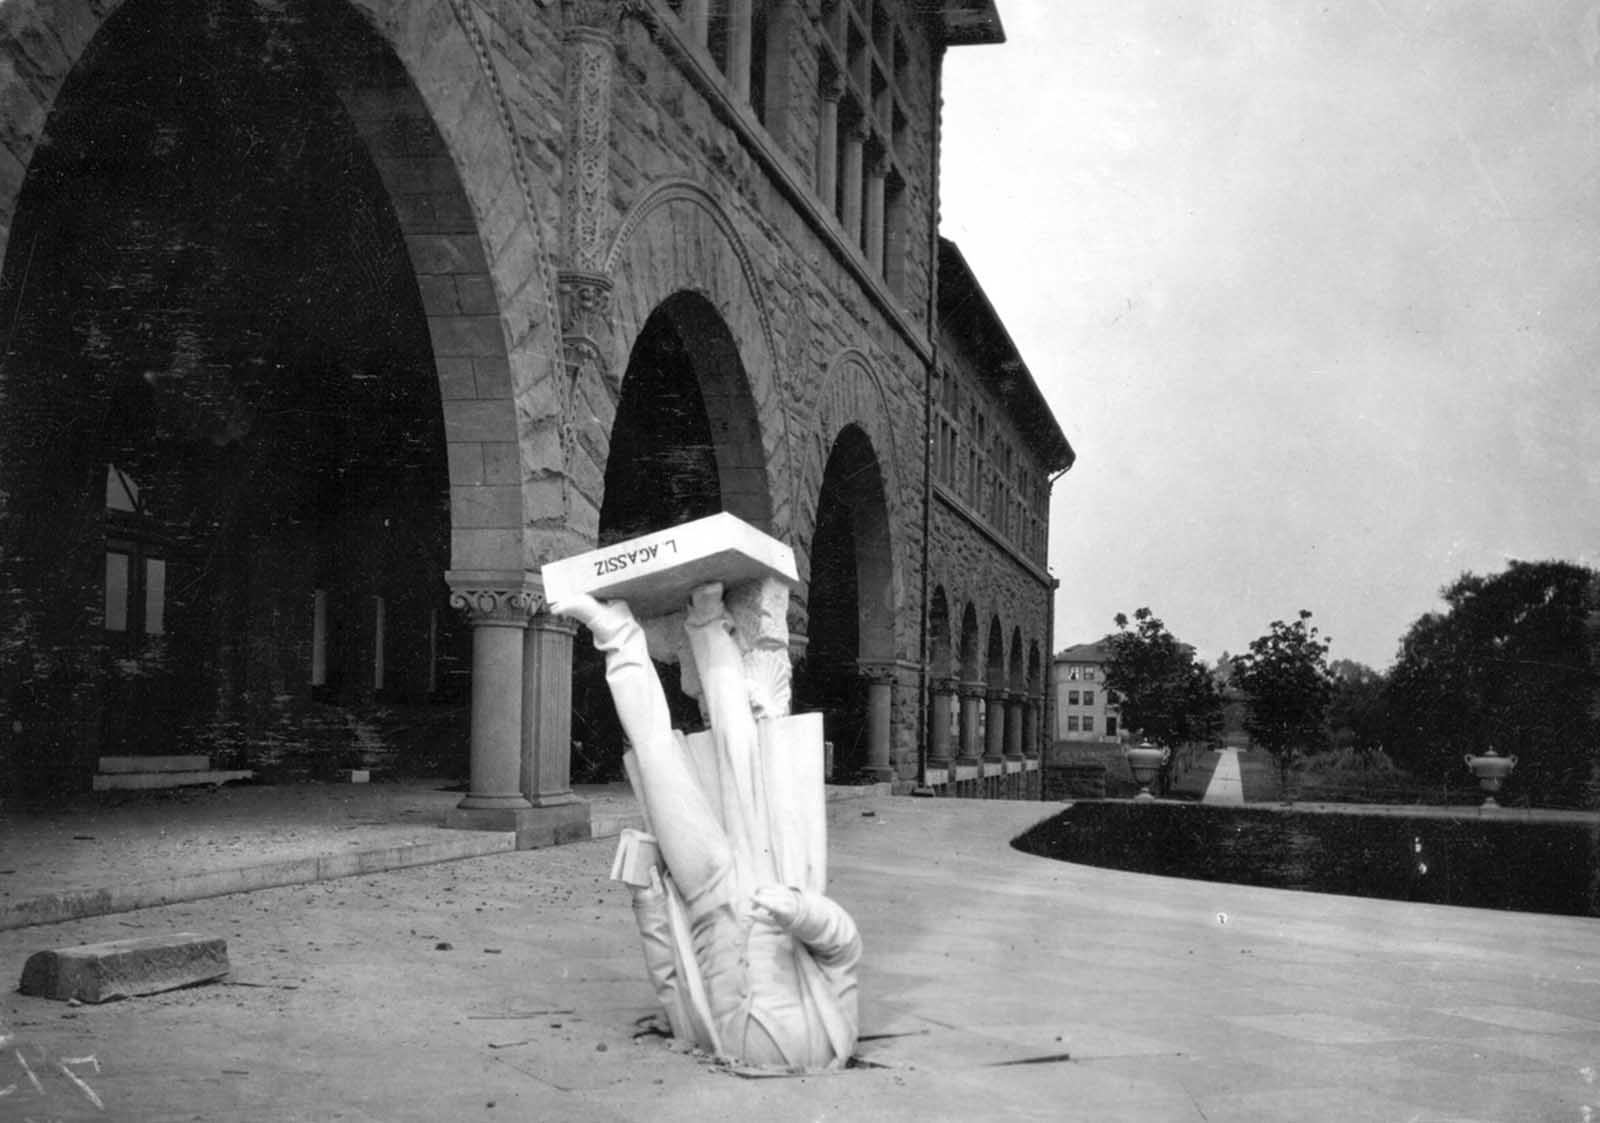 The toppled statue of Jean Louis Rodolphe Agassiz, scientist and scholar, knocked from the facade of Stanford University's zoology building in April of 1906.